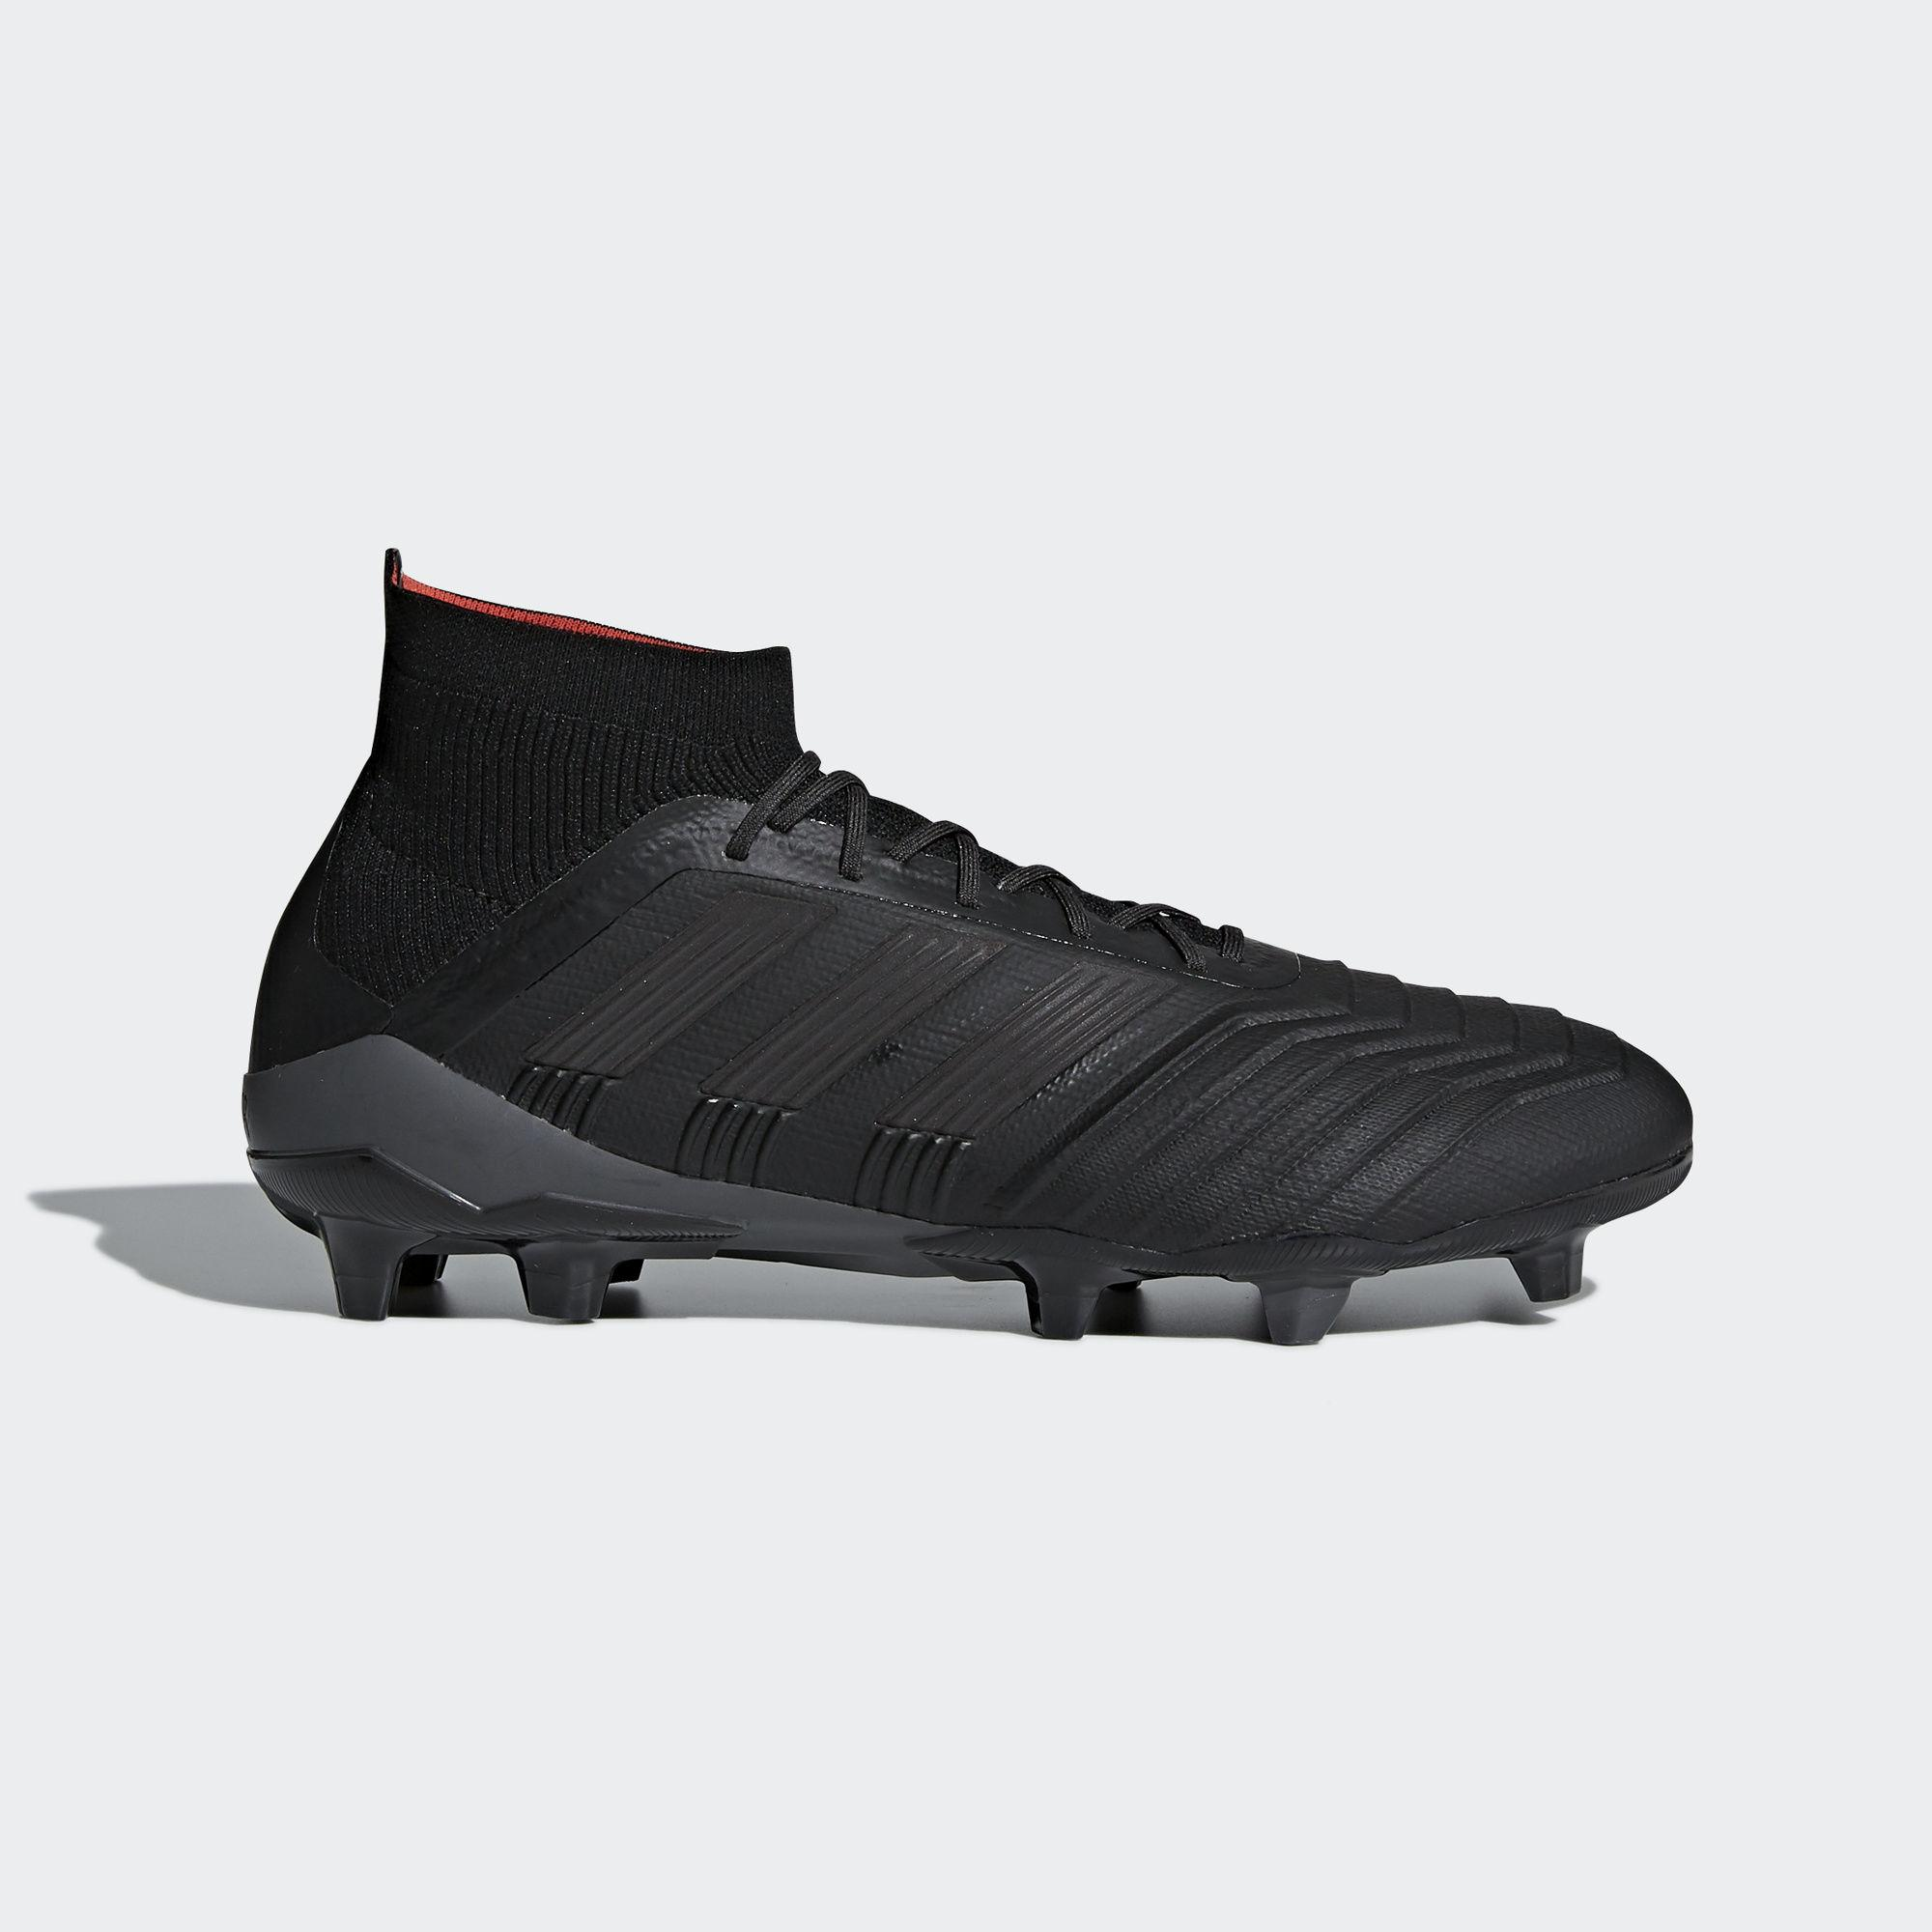 2db813ef1 adidas Predator 18.1 Firm Ground Boots in Black for Men - Save 51 ...